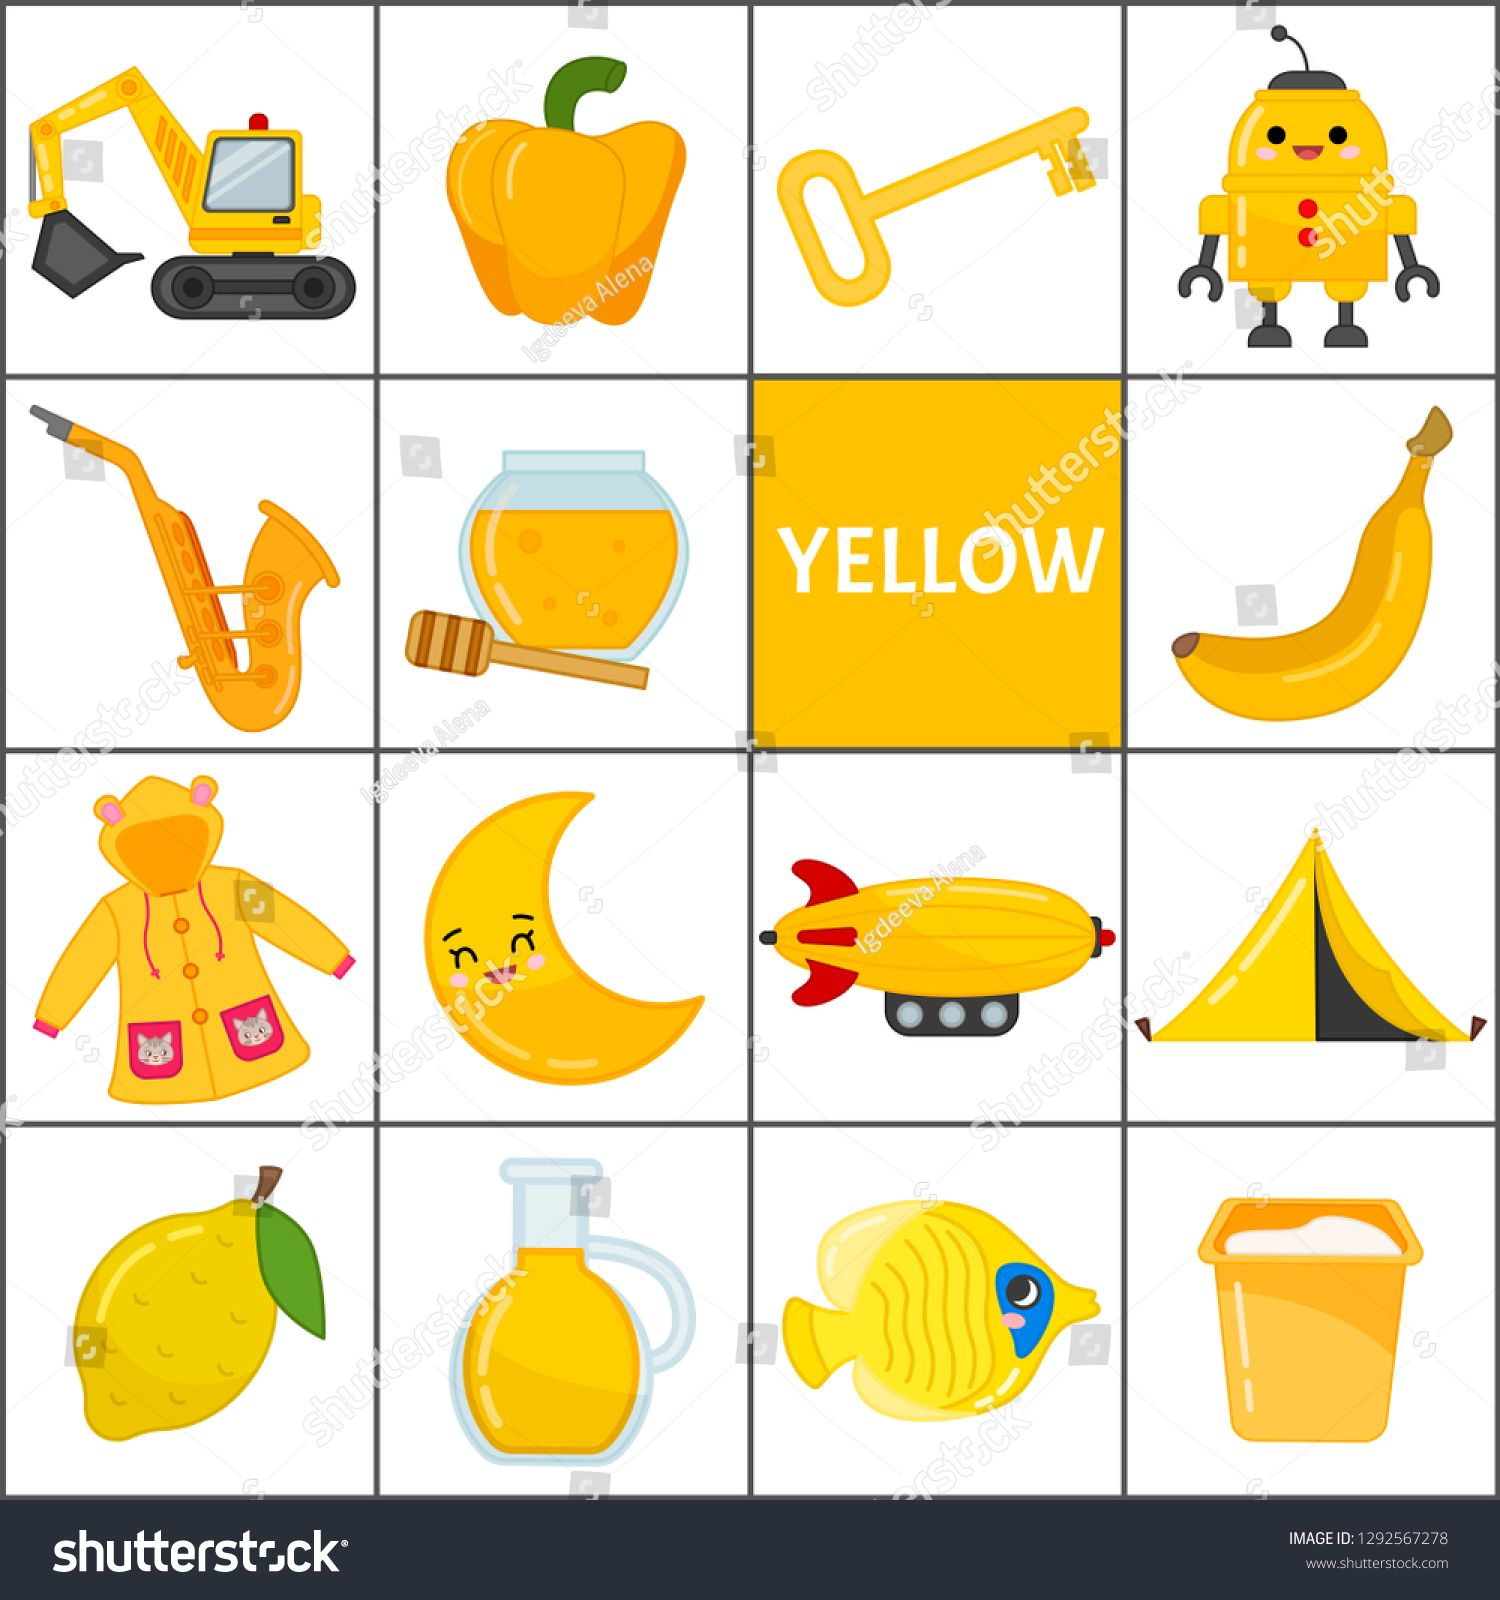 Learn The Primary Colors Yellow Different Objects In